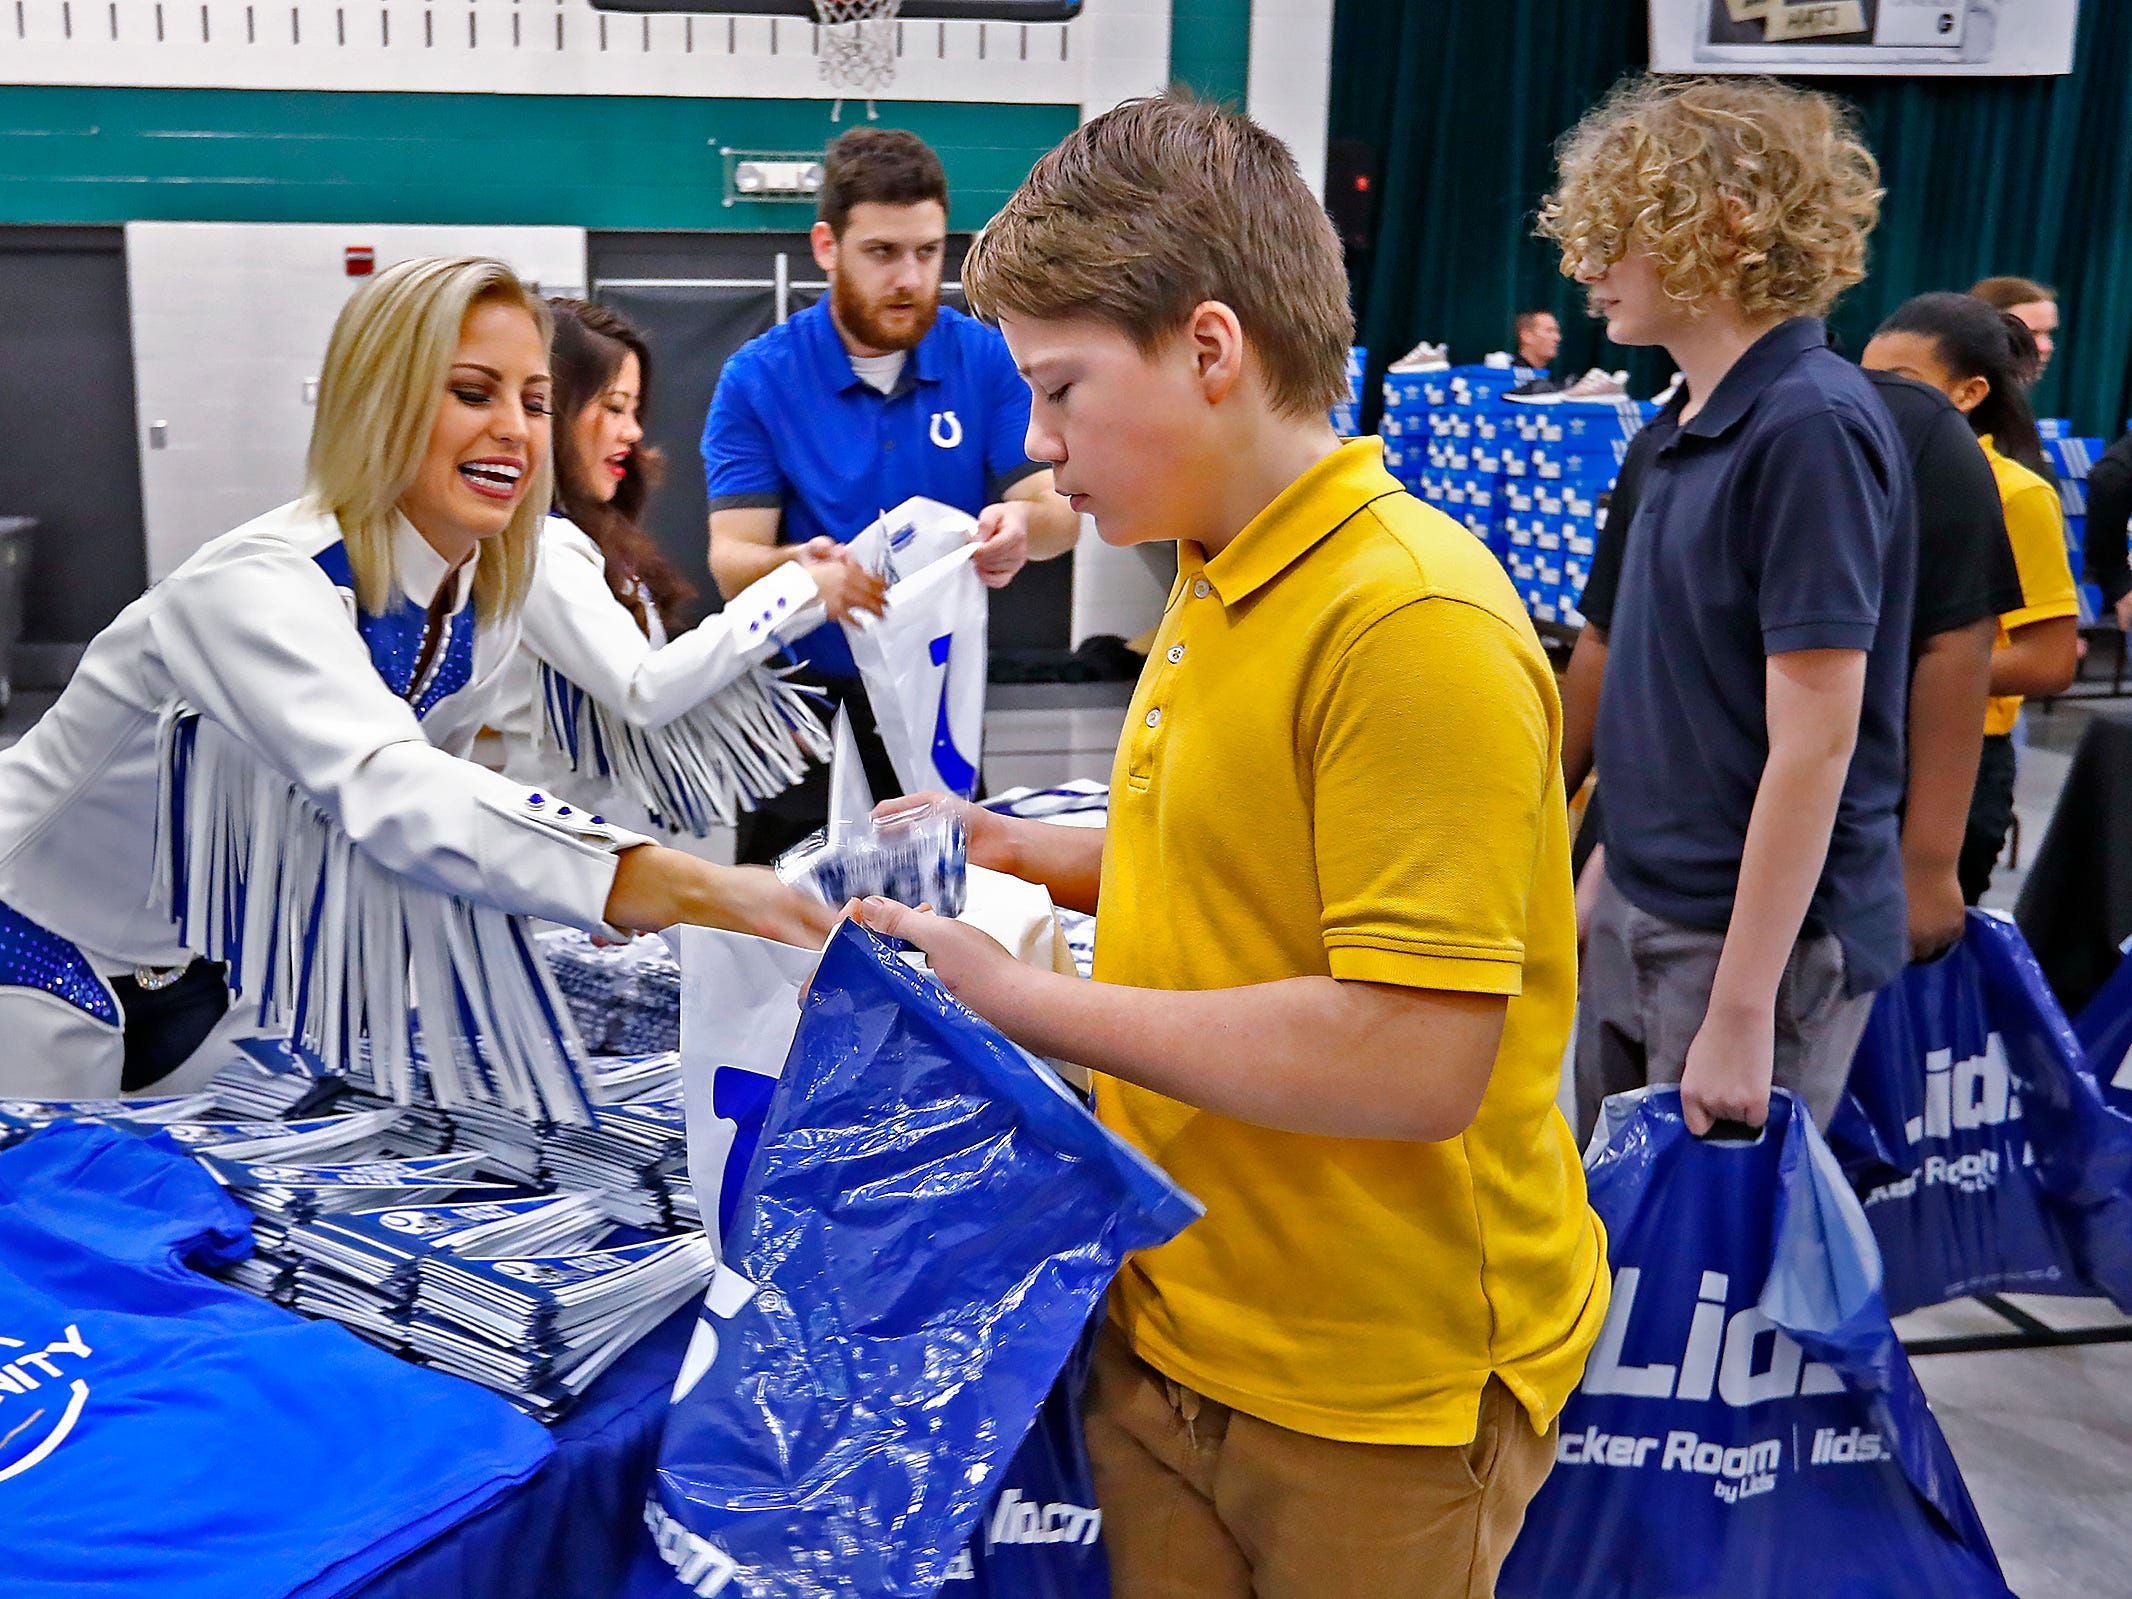 Colts' cheerleader Zhanna, left, and others hand out Colts memorabilia to students, including, Tyler Denton, center, at Brookside School 54, Monday, Dec. 3, 2018.  Colts players and staff joined as LIDS Sports and its parent company Genesco fit and gave new shoes, socks, hats, and snacks to students as part of the 13th annual Cold Feet, Warm Shoes event.